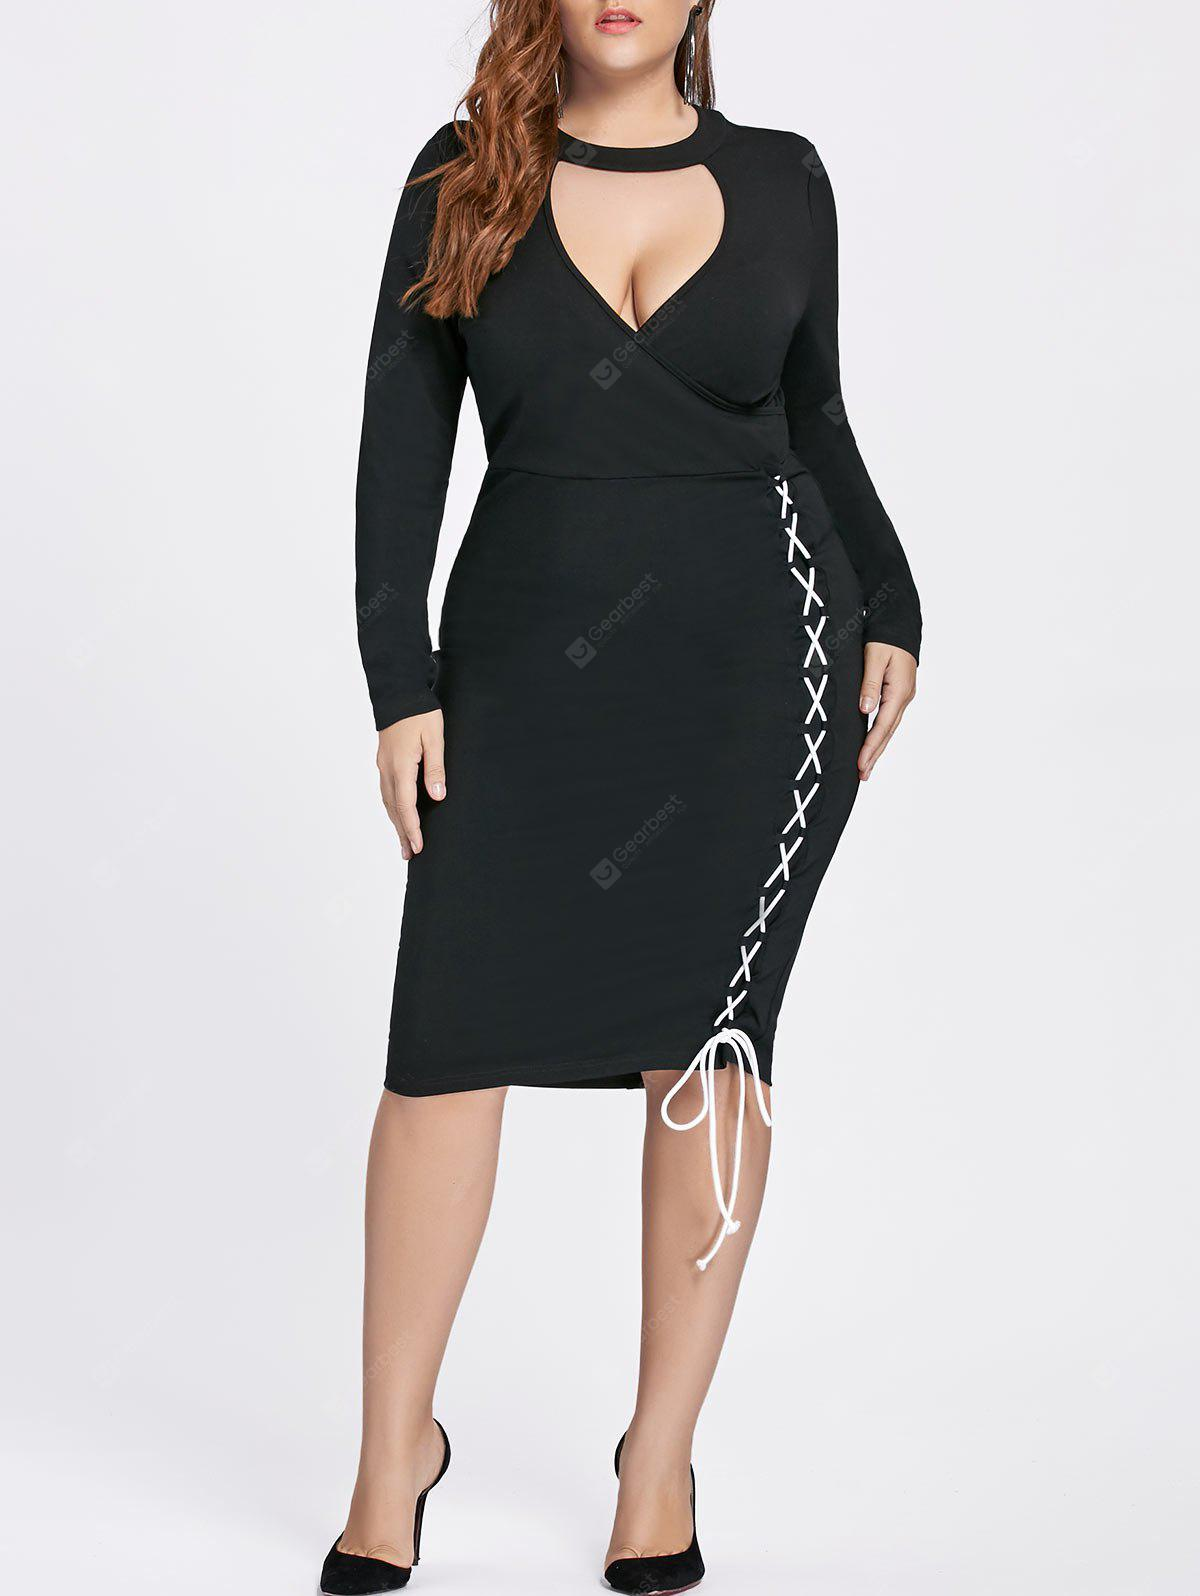 Lace-up Side Plus Size Bodycon Choker Dress